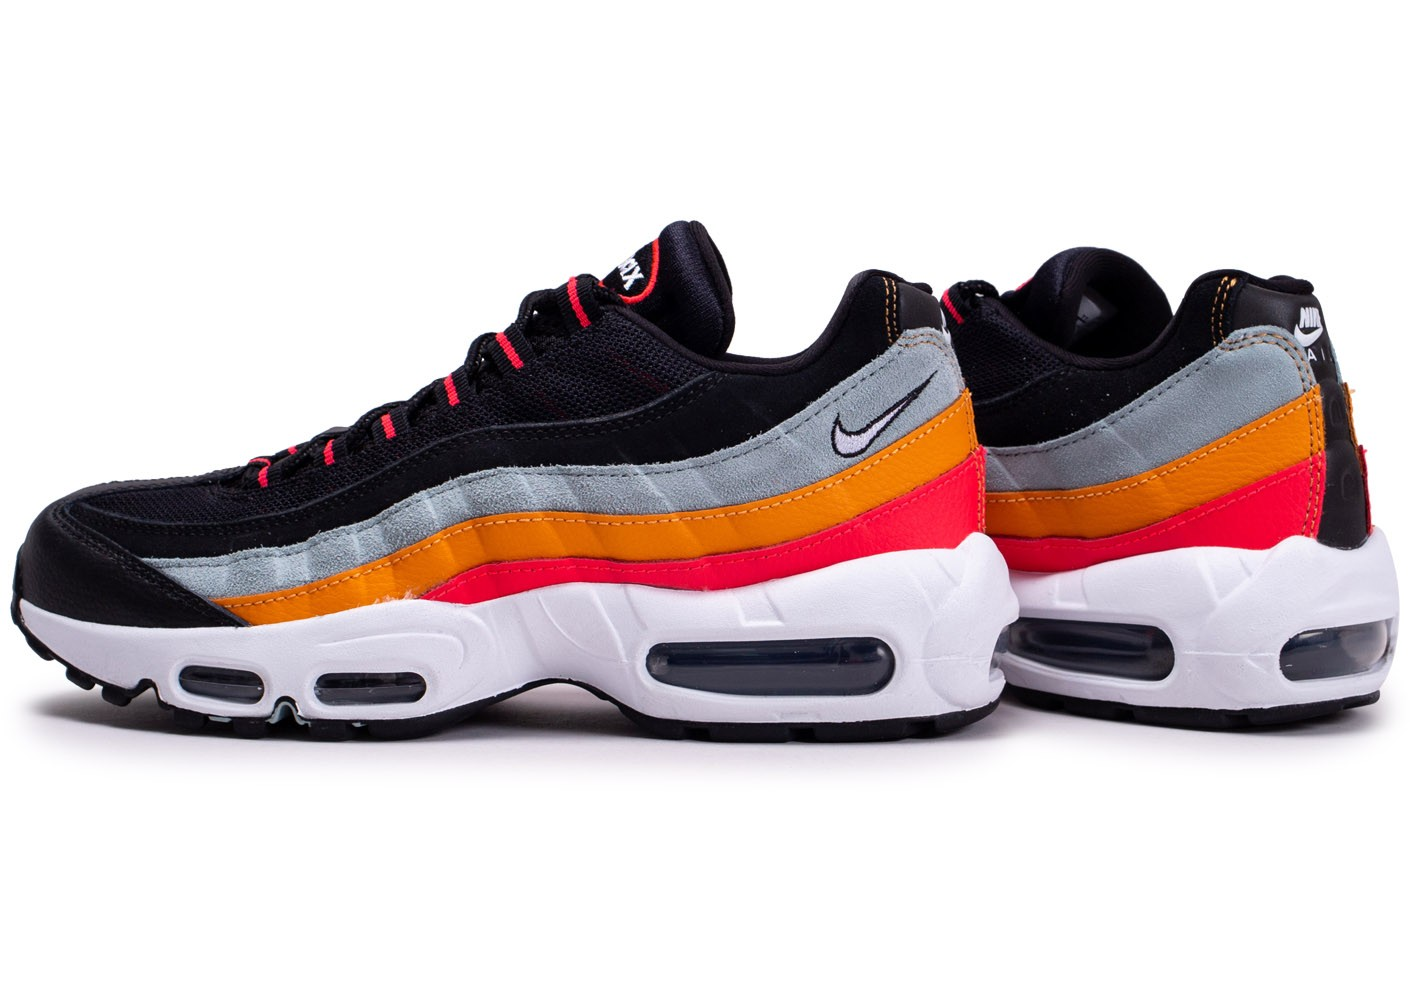 Nike Air Max 95 Essential noir gris orange - Chaussures ...